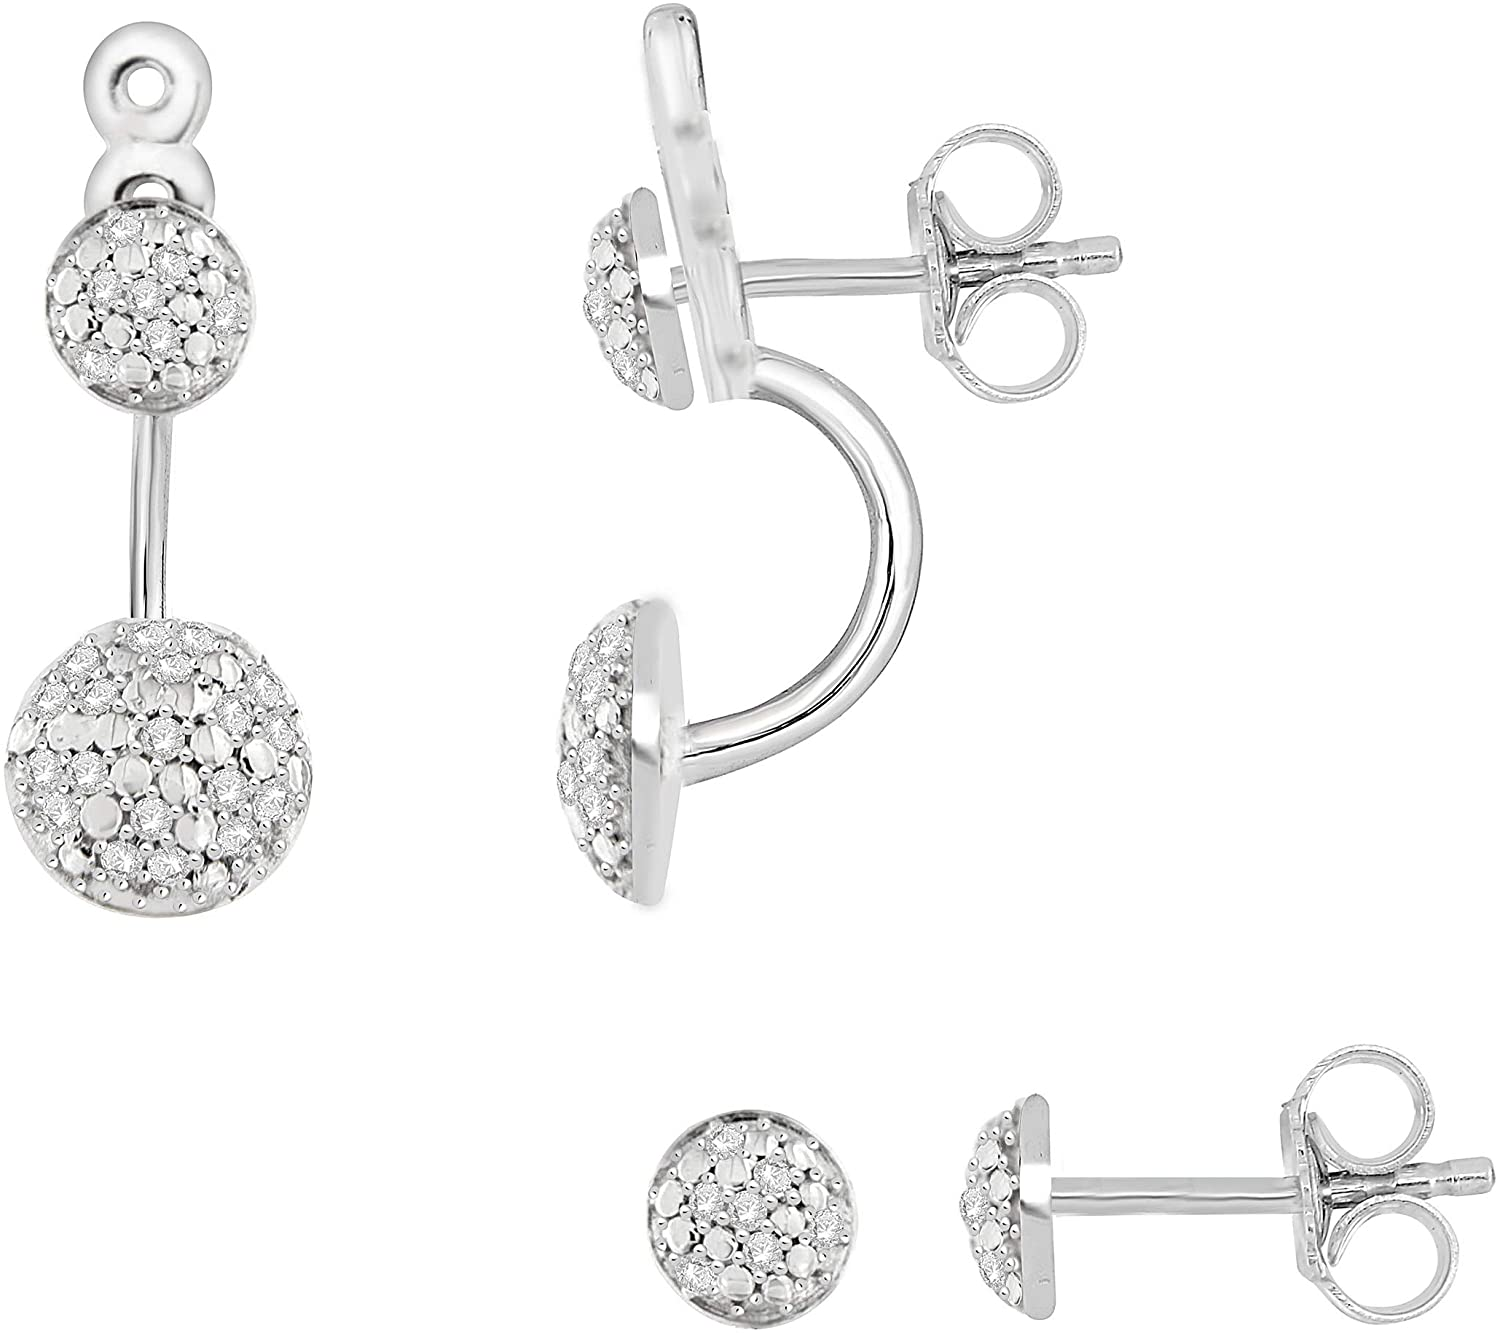 NATALIA DRAKE 2 in 1 Front to Back Pave 1/4 Cttw Diamond Earrings for Women in Rhodium Plated Sterling Silver (Color H-I/Clarity I1-I2)